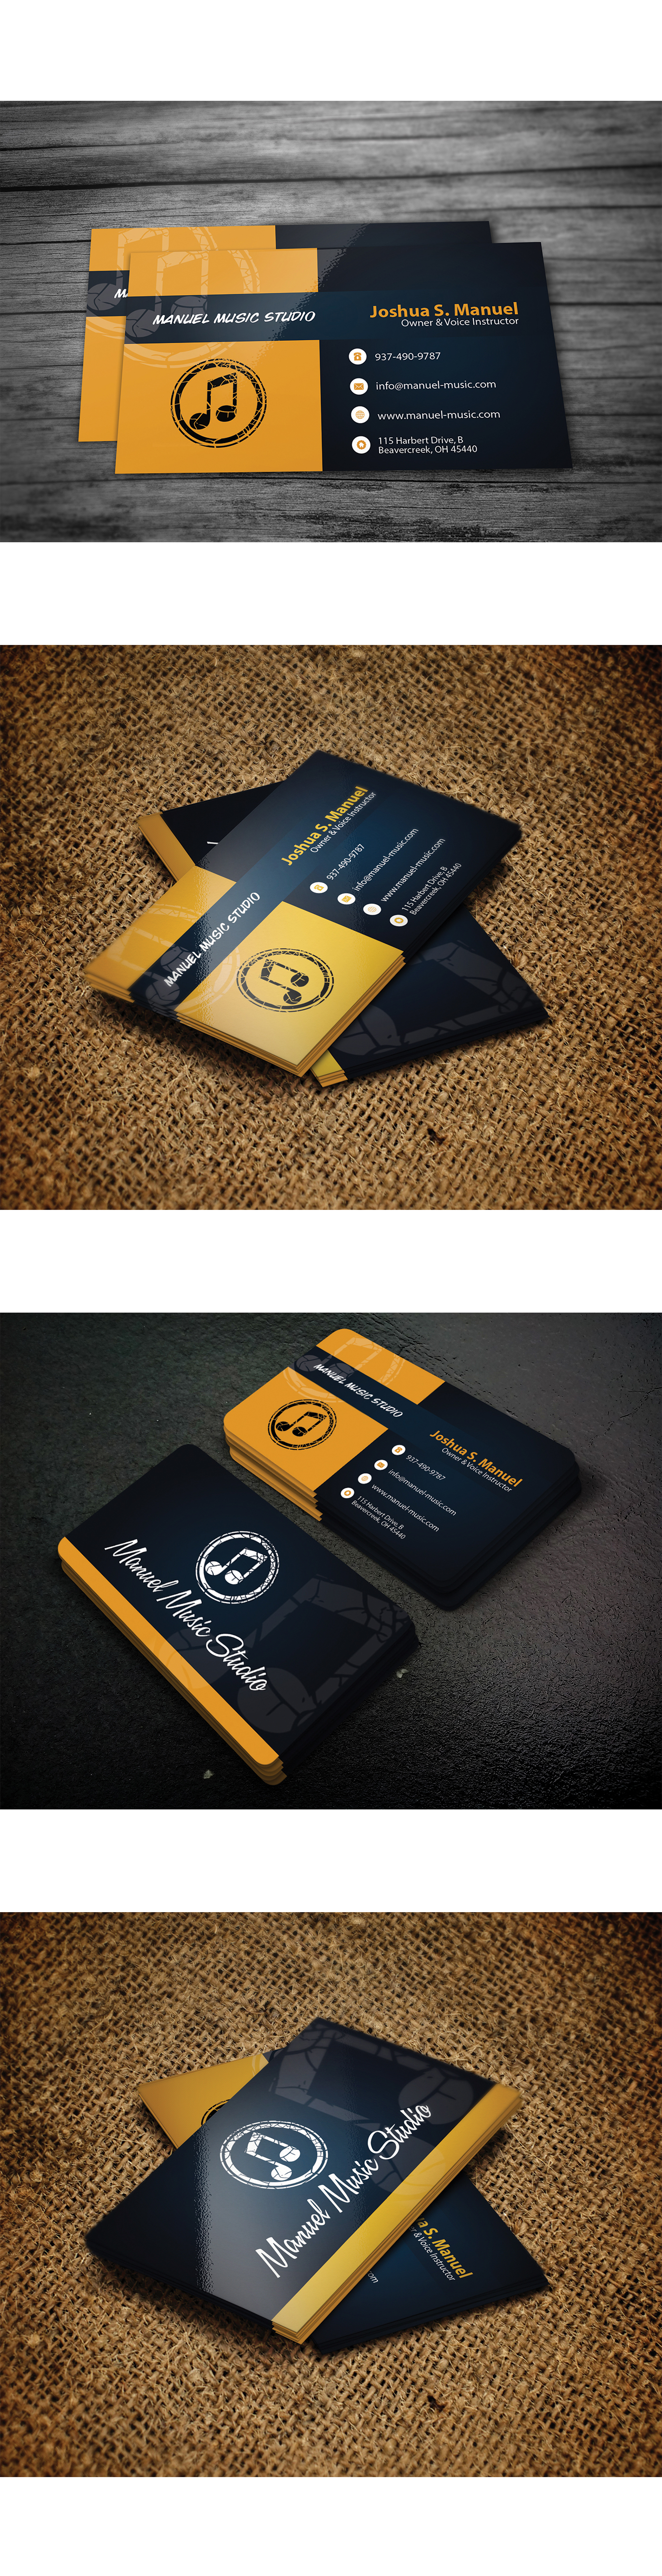 Free Business Card Design PSD File On Behance - Music business card template